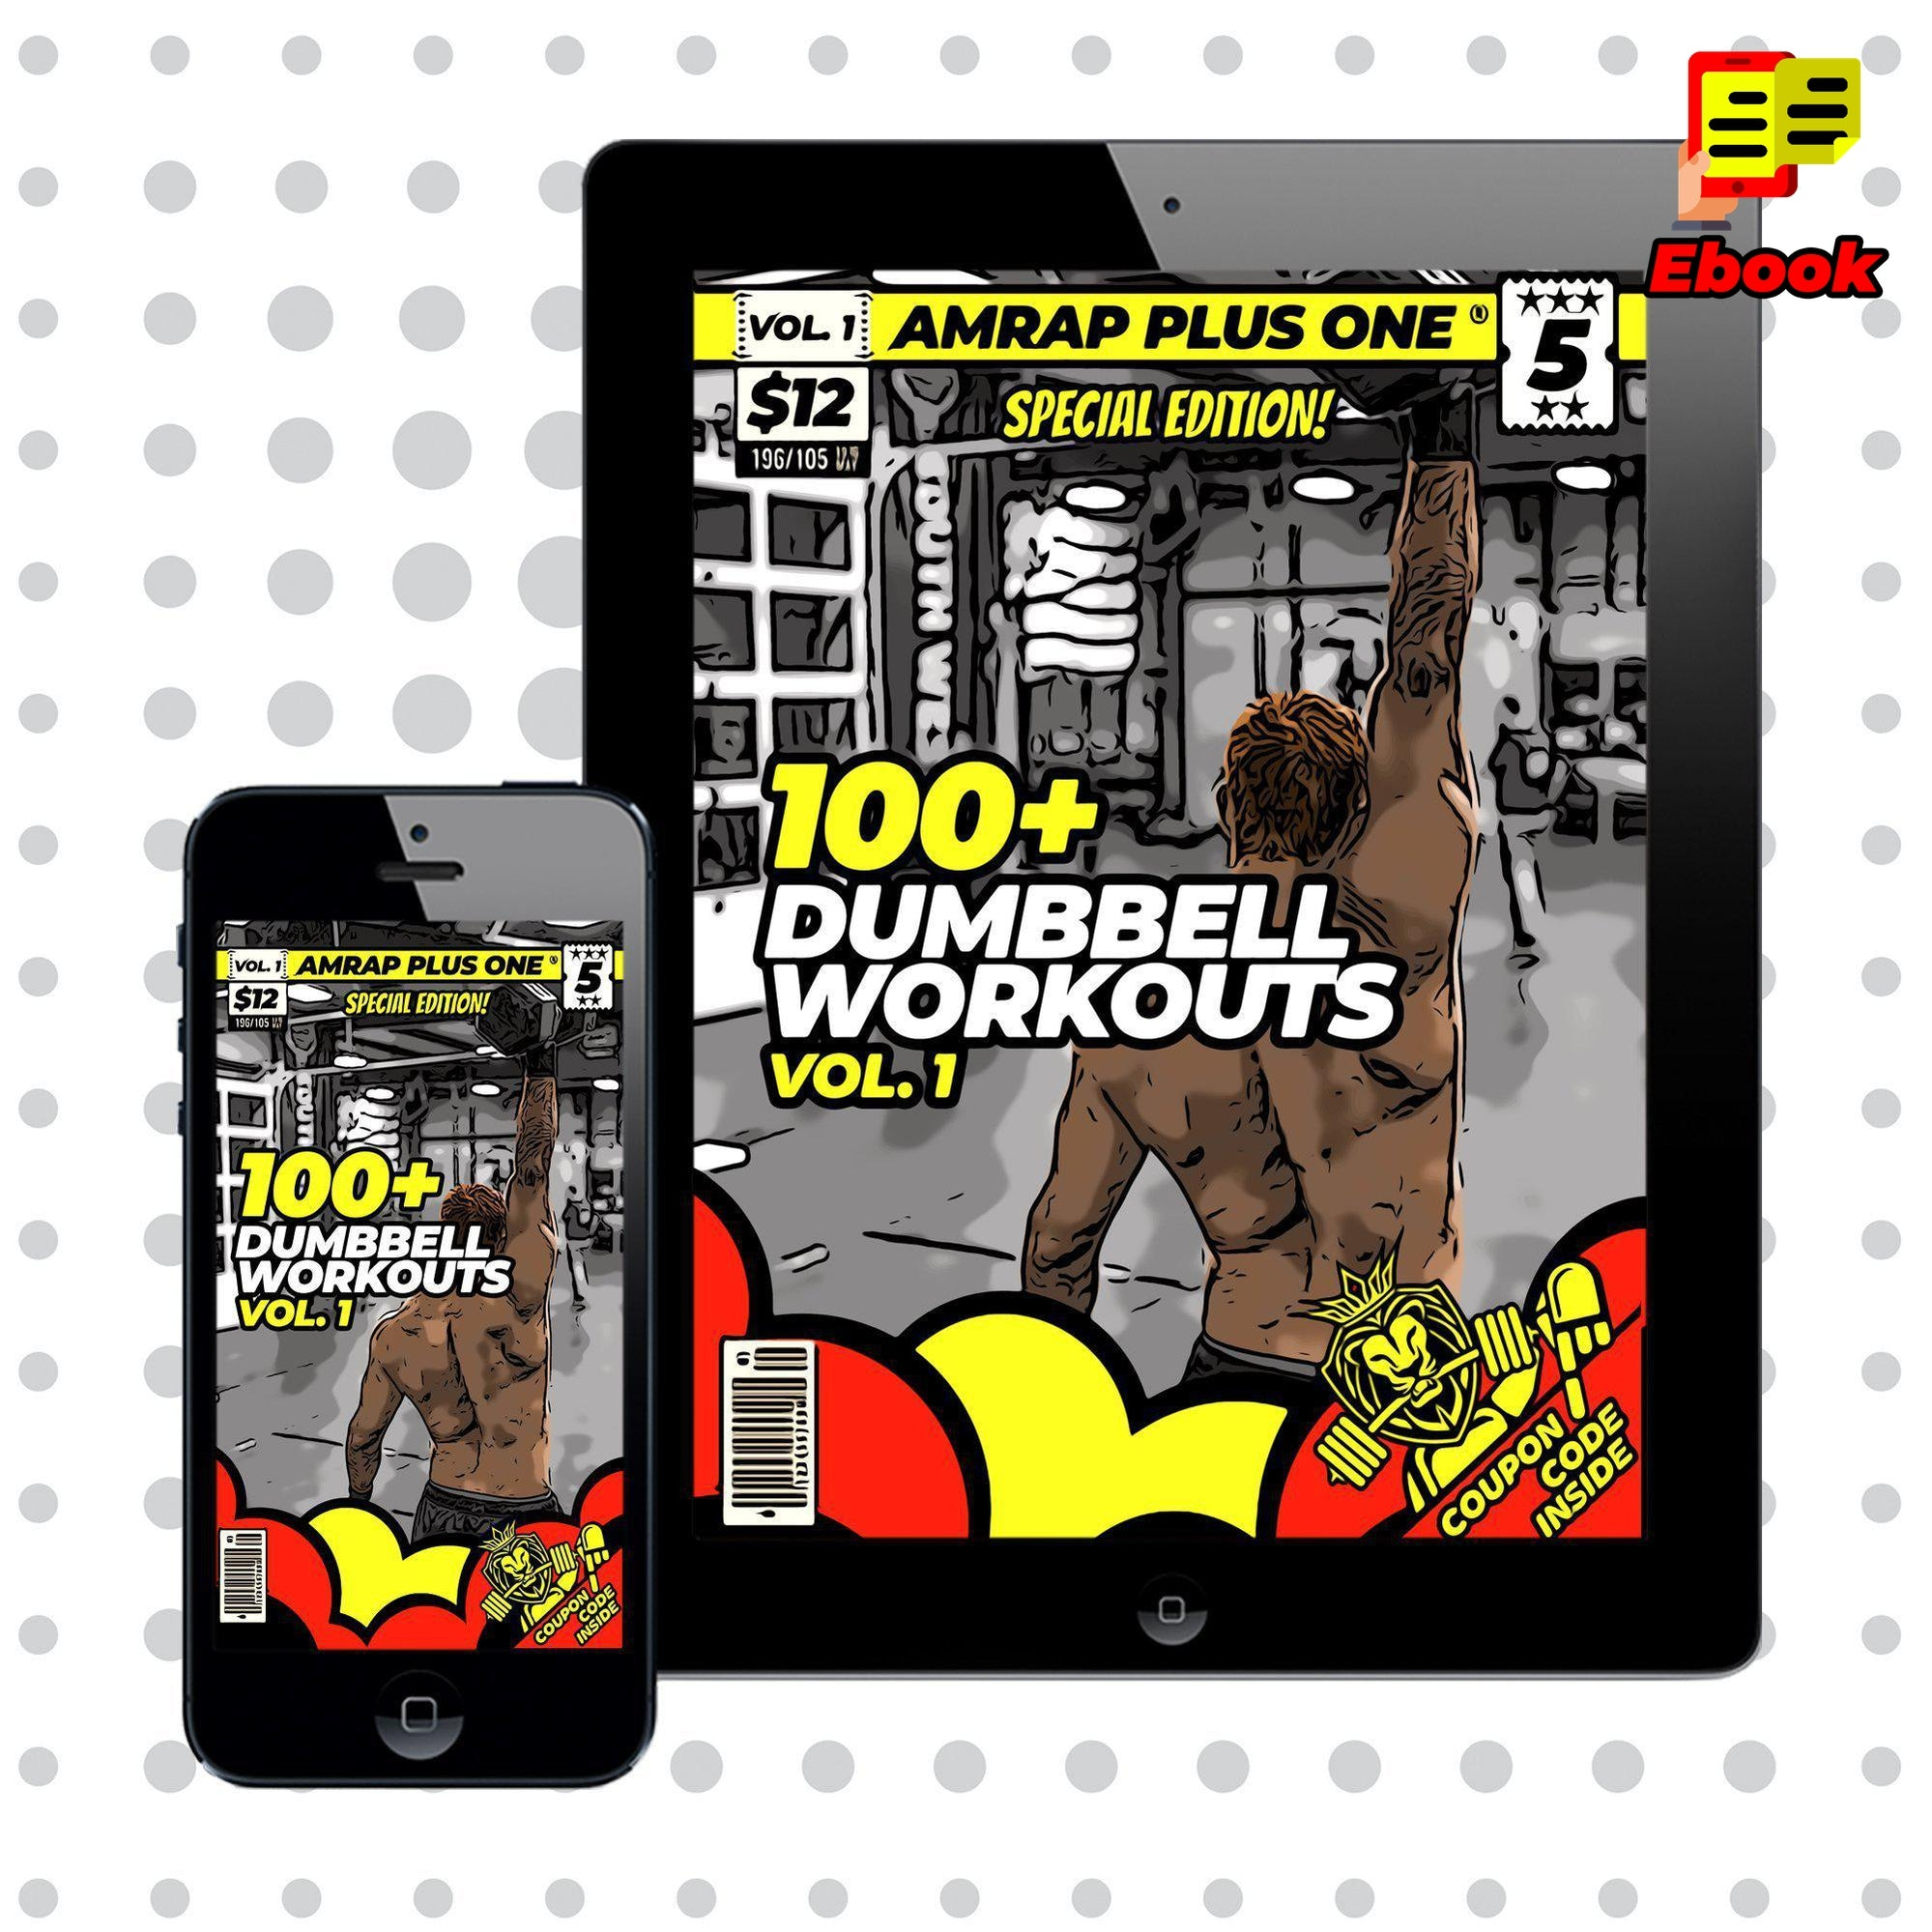 100+ Dumbbell Workouts Vol. 1 - AMRAP Plus One